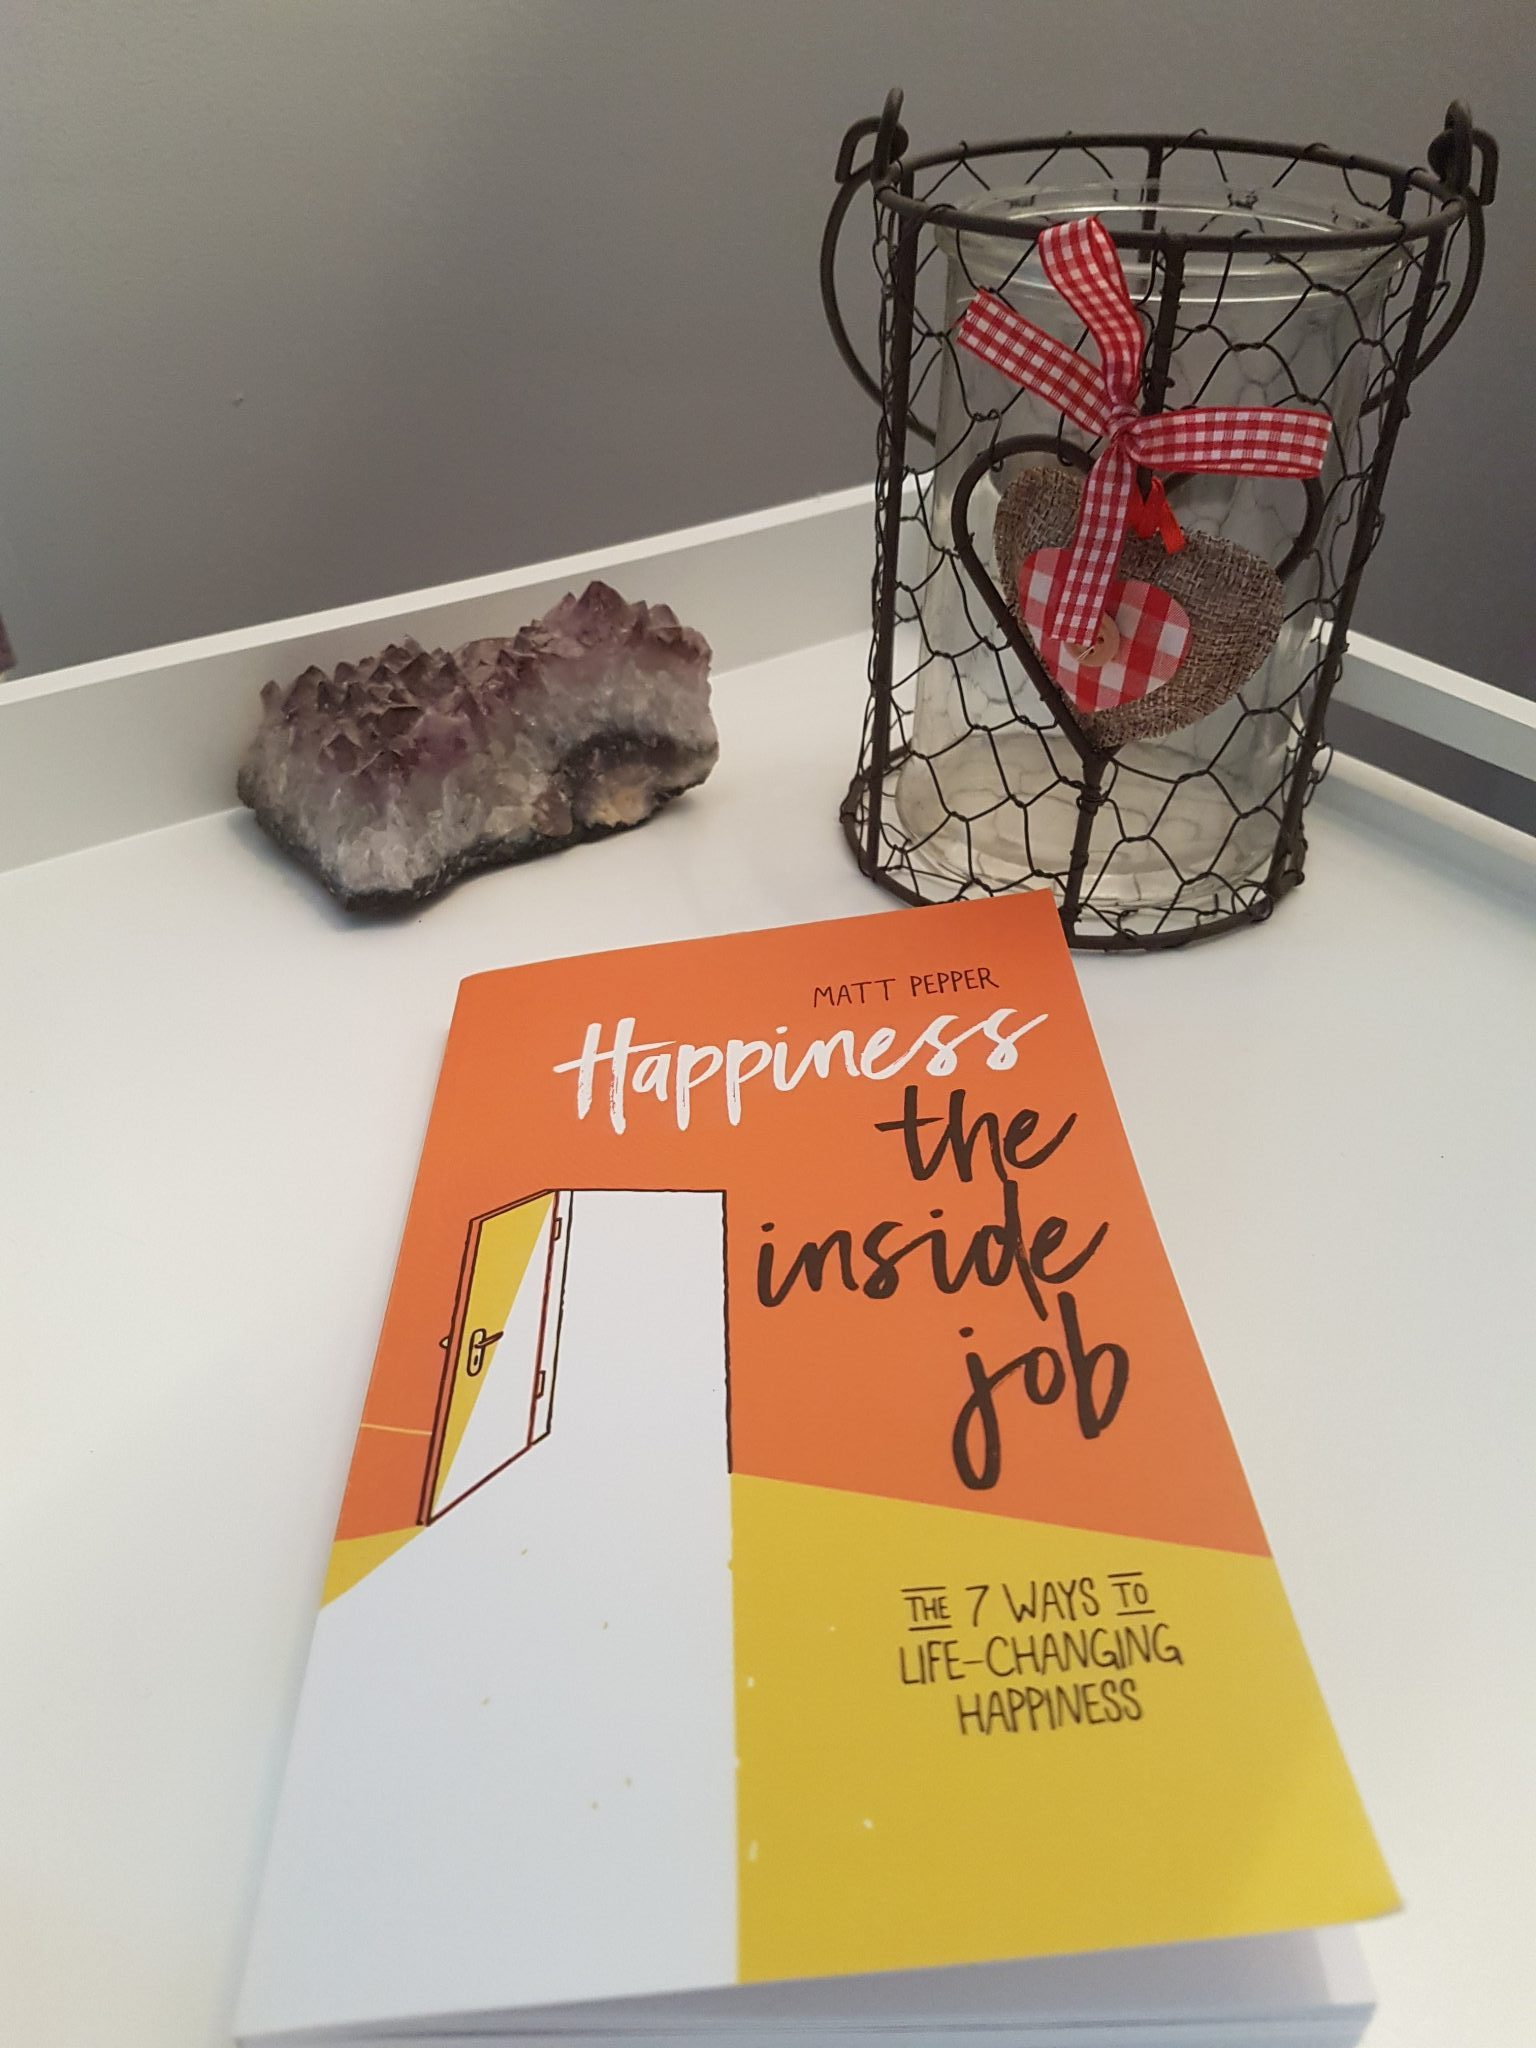 Happiness-the-inside-job-image